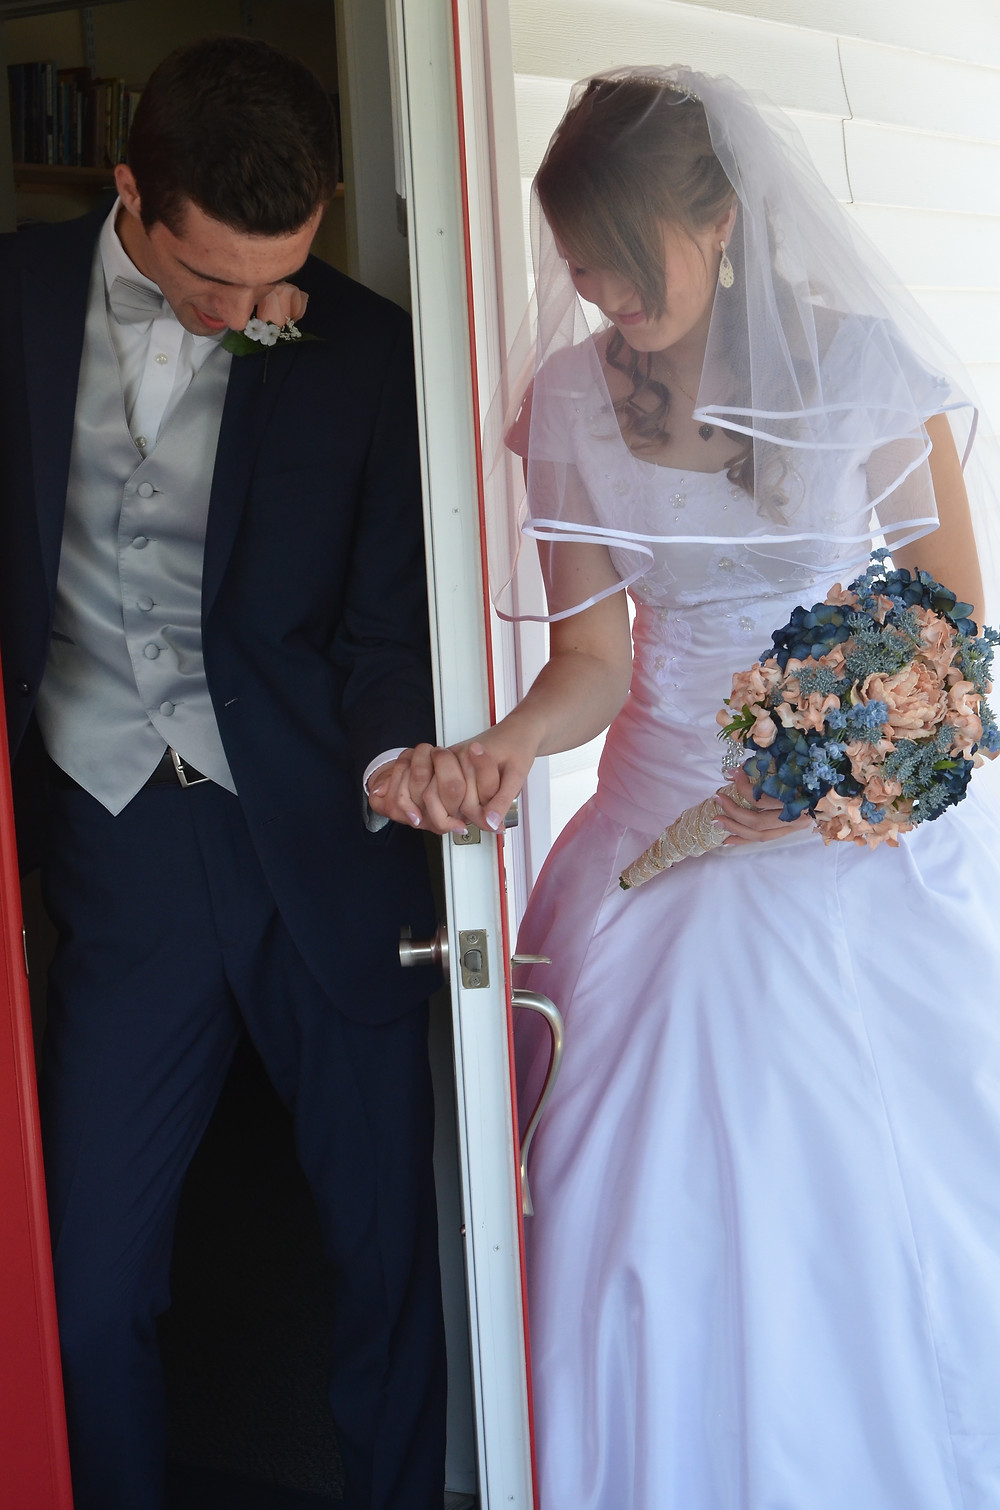 A bride and groom hold hands with a door separating them and pray together before the wedding ceremony